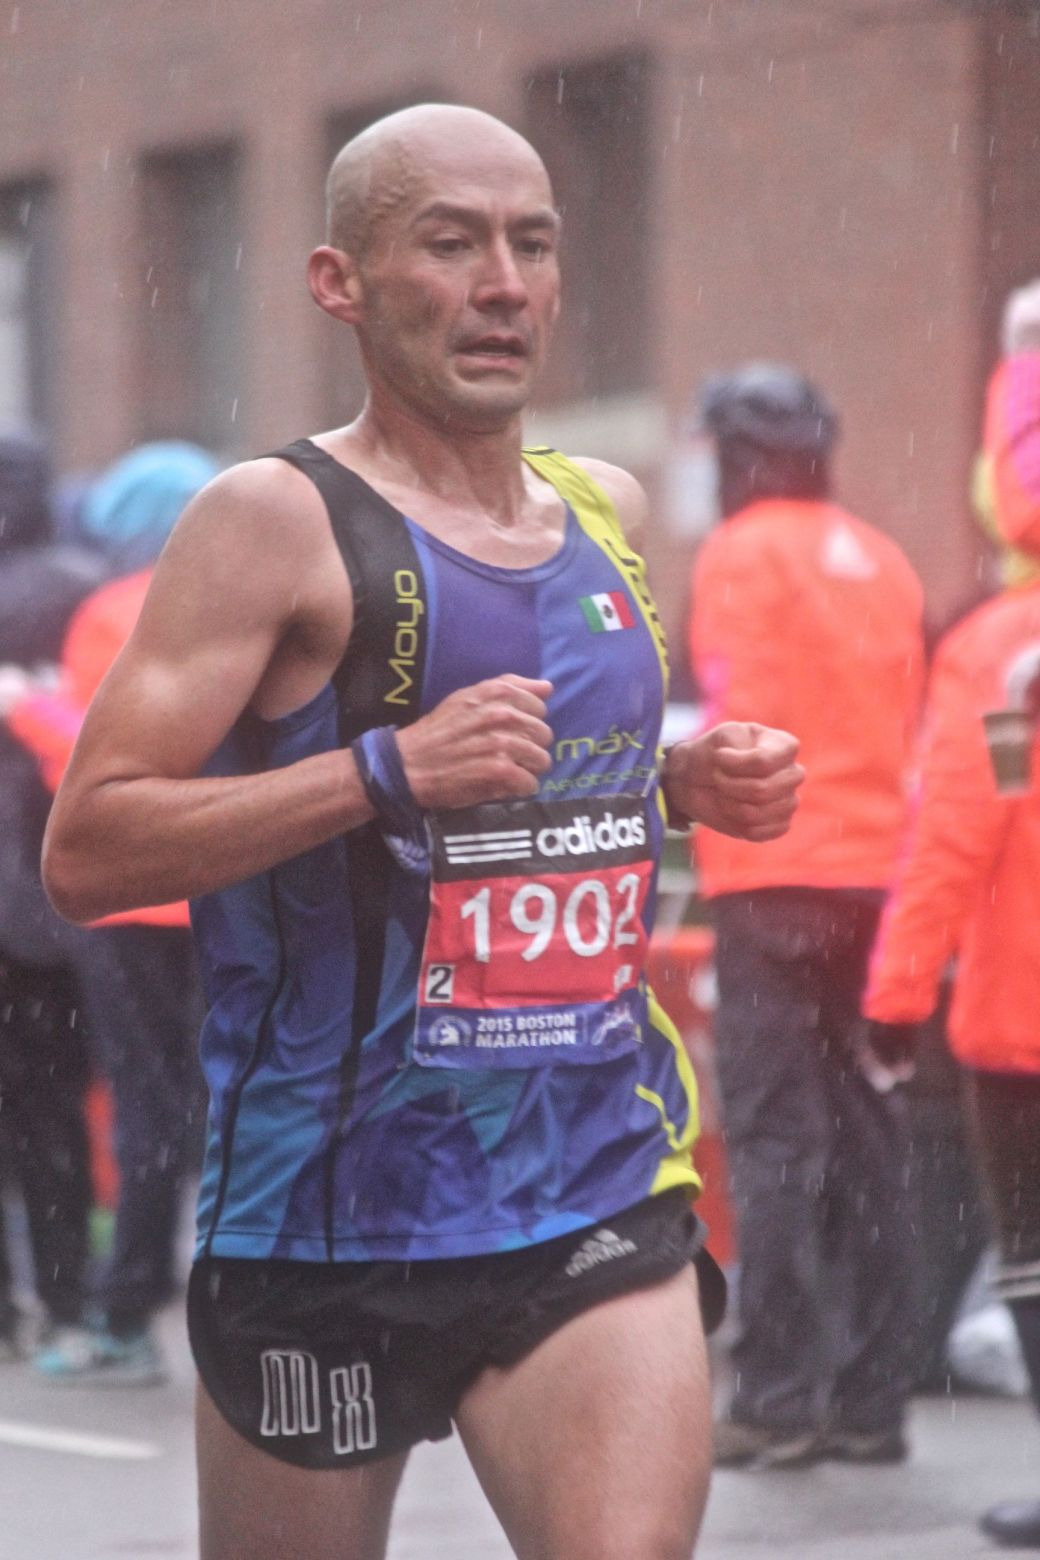 boston marathon april 20 2015 racer number 1902 rain